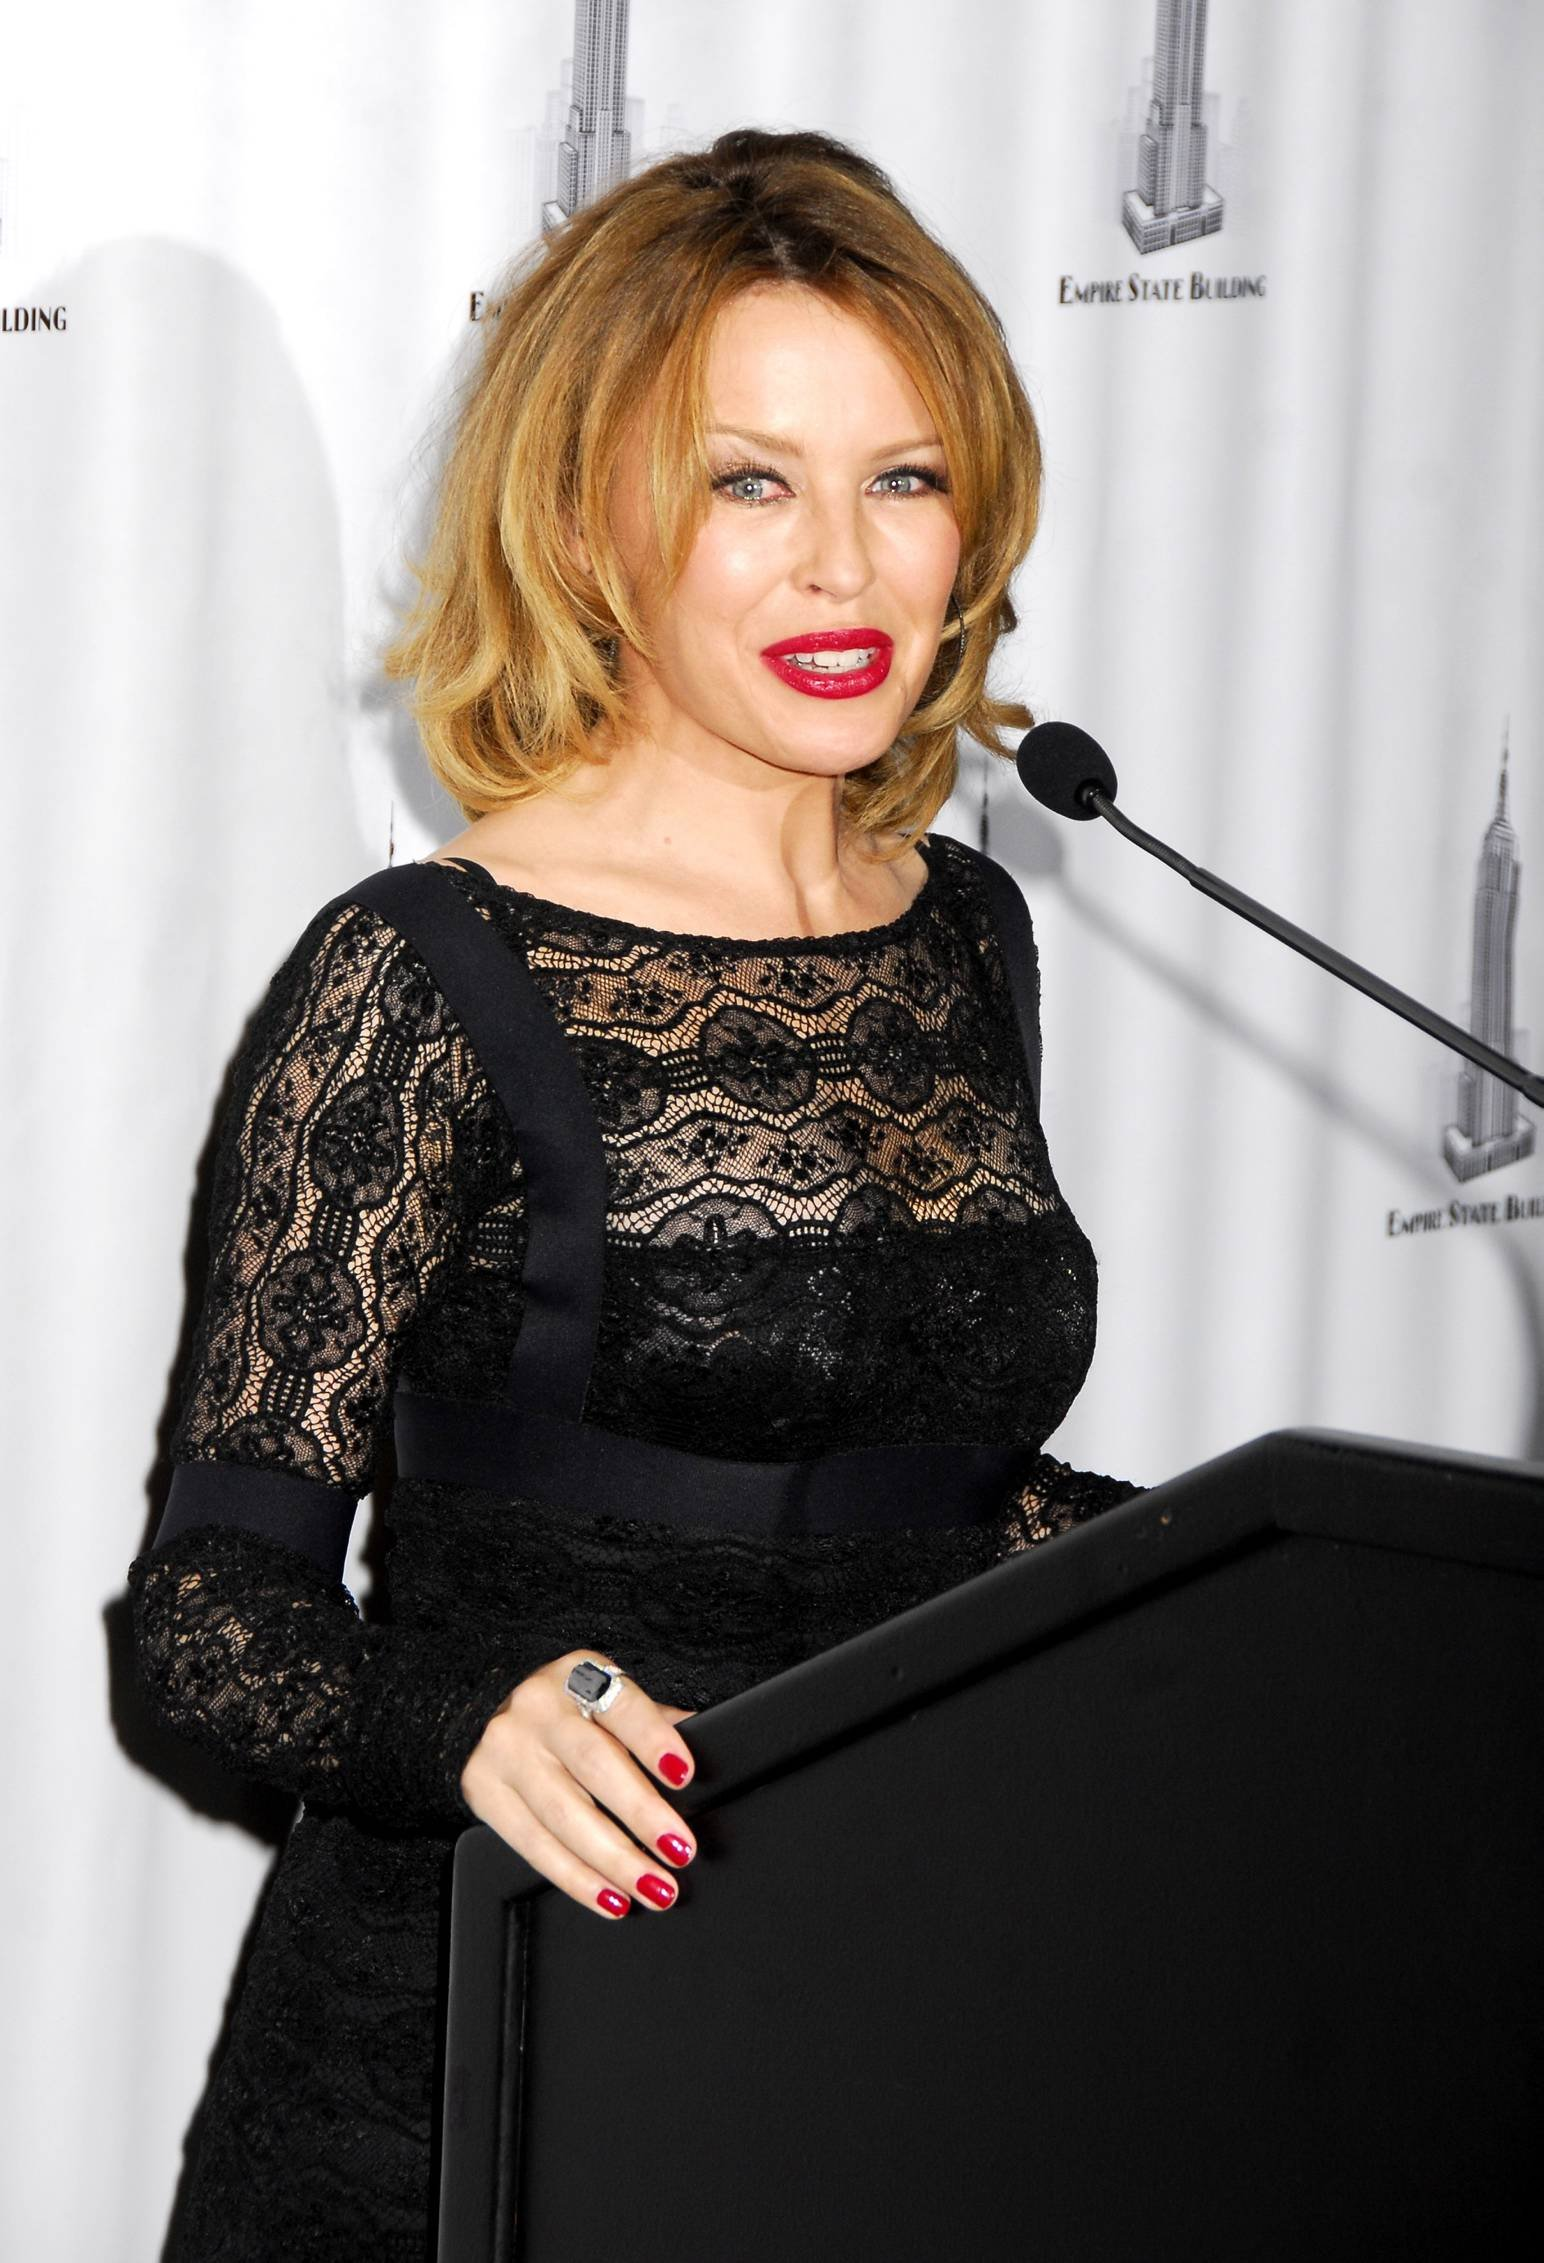 25793_Celebutopia-Kylie_Minogue_lights_The_Empire_State_Building-11_122_620lo.jpg